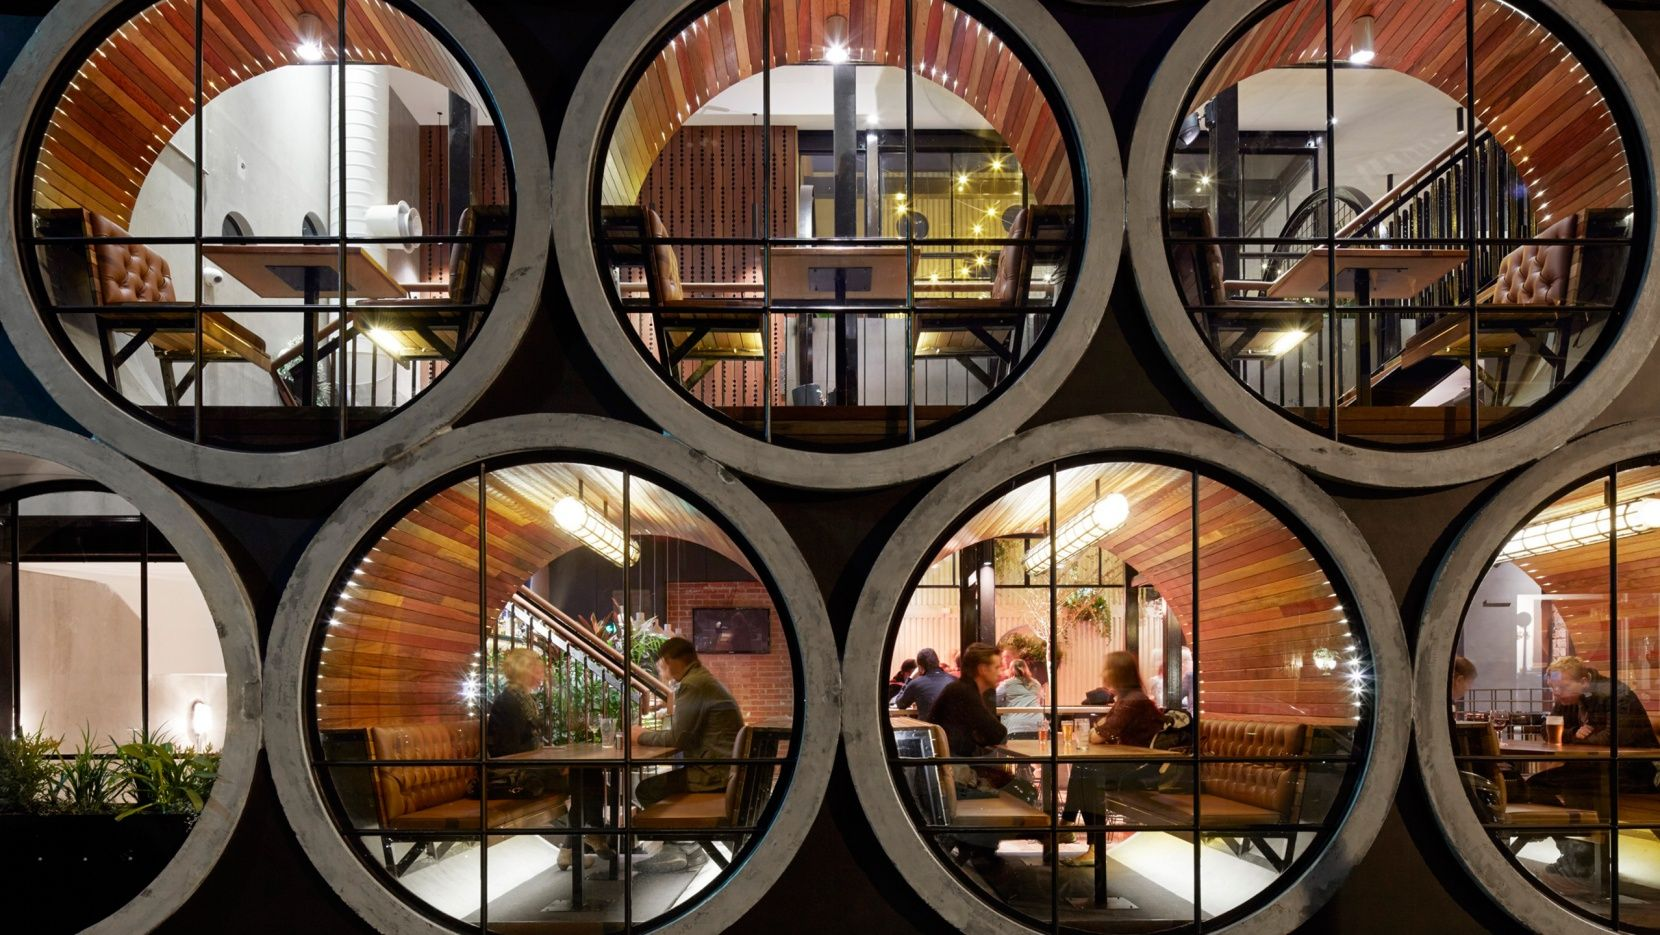 Using concrete pipes to create multi-level booth seating, the Prahran Hotel by Techné Architects in Melbourne, Australia, is a pub that offers its patrons the chance to sit snugly right inside its façade.